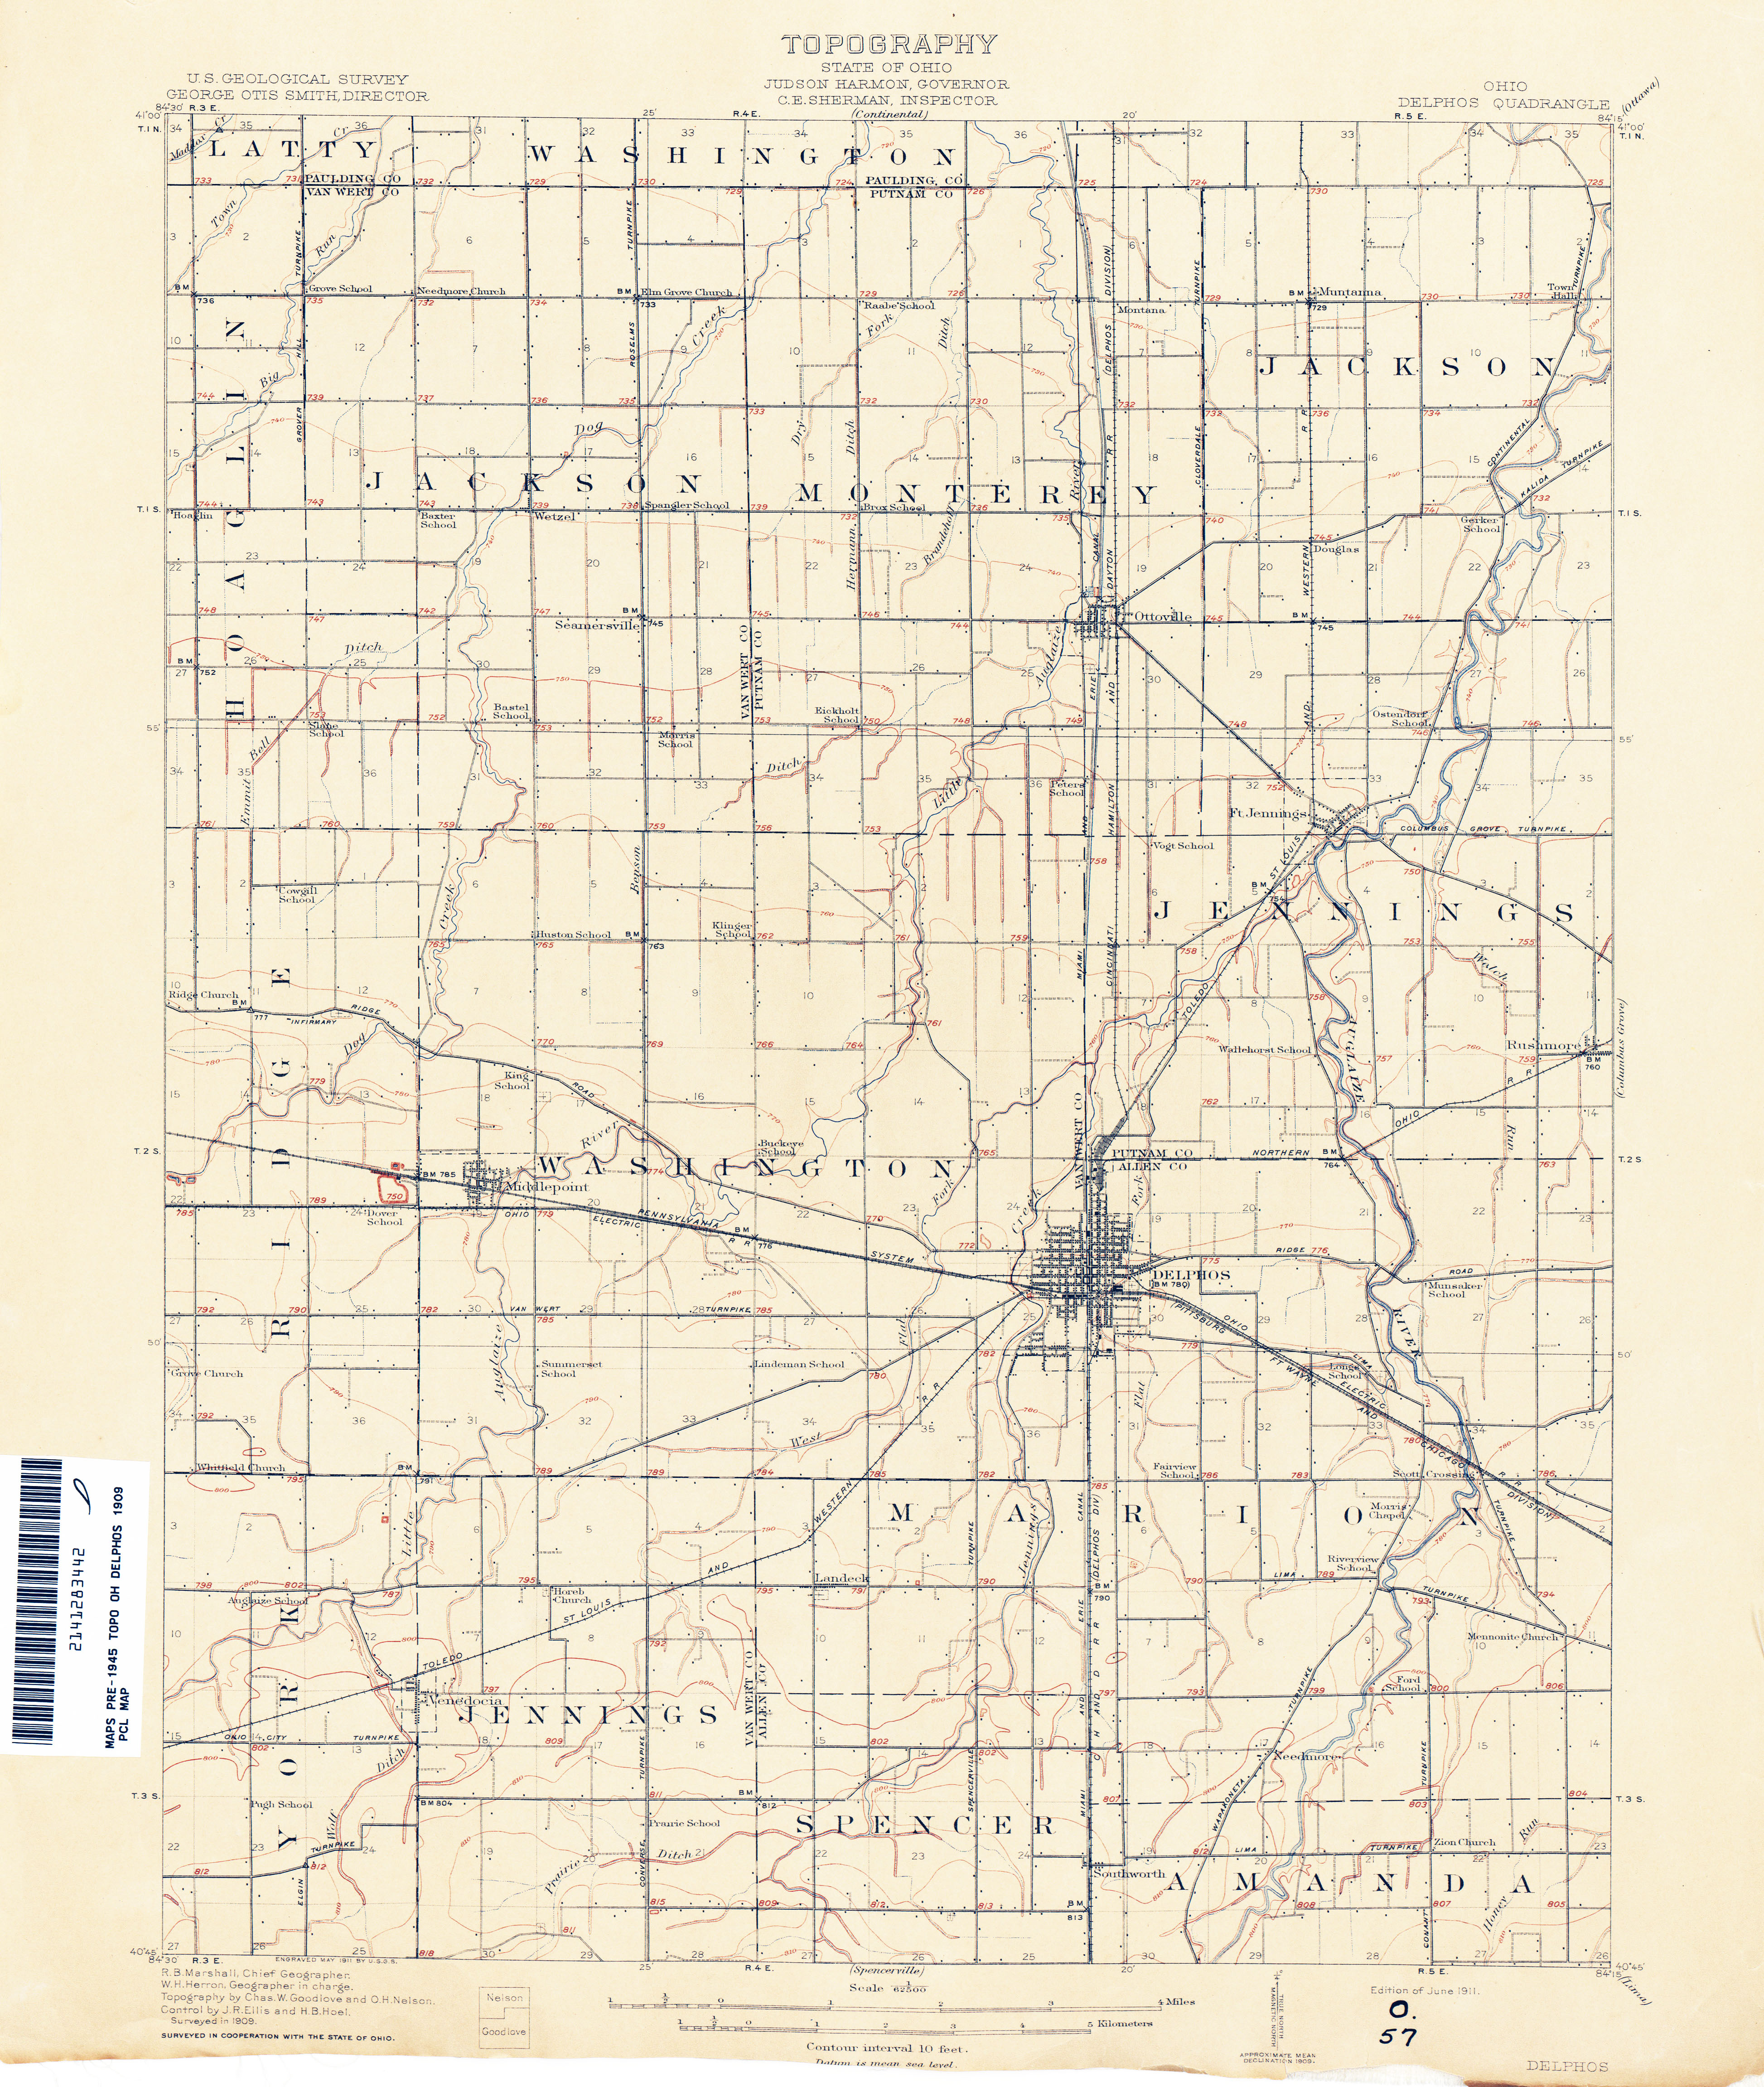 Ohio Historical Topographic Maps - Perry-Castañeda Map ... on map of chesterland, map of chanute, map of fairborn, map of geneva on the lake, map of auglaize county, map of west carrollton, map of grandview heights, map of elyria, map of tiffin, map of canal fulton, map of celina, map of elgin, map of piqua, map of huber heights, map of chicago heights, map of holgate, map of canal winchester, map of oak hill, map of lima, map of wauseon,